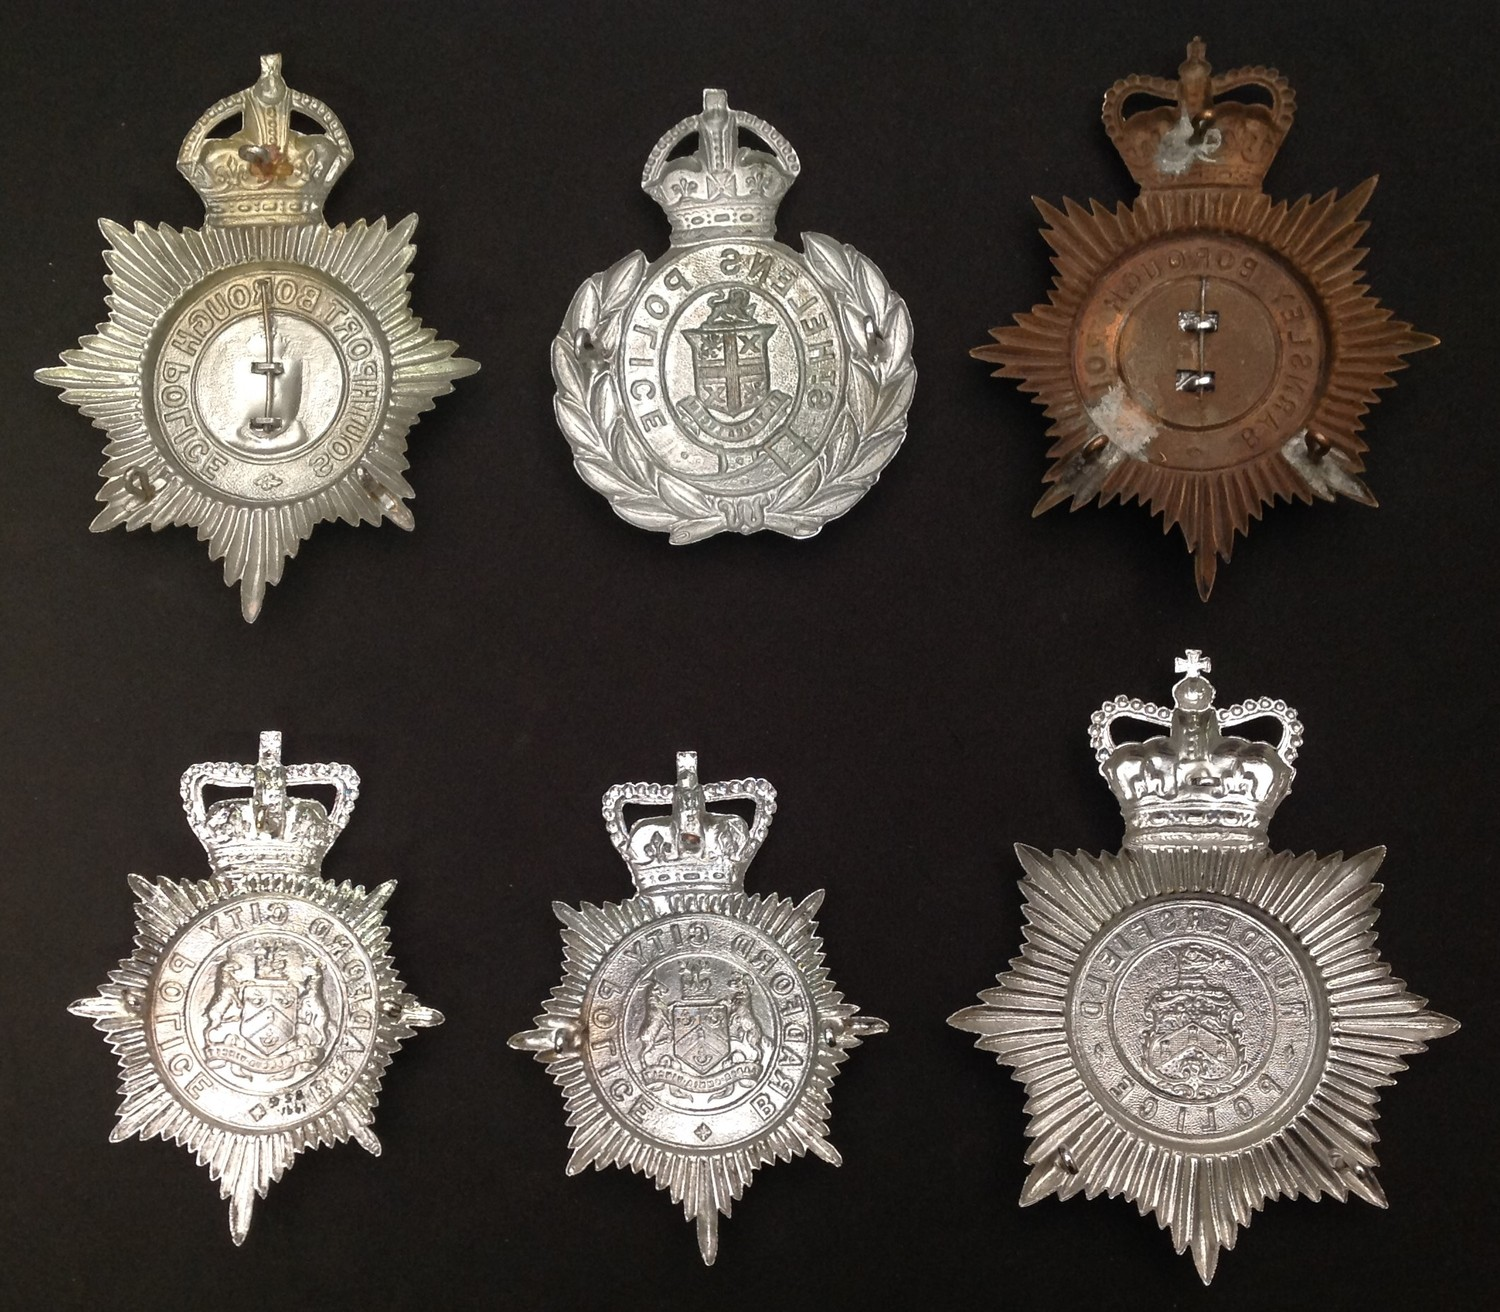 Kings Crown Southport Borough Police: Kings Crown St. Hellens Police: Queens Crown Barnsley - Image 2 of 2